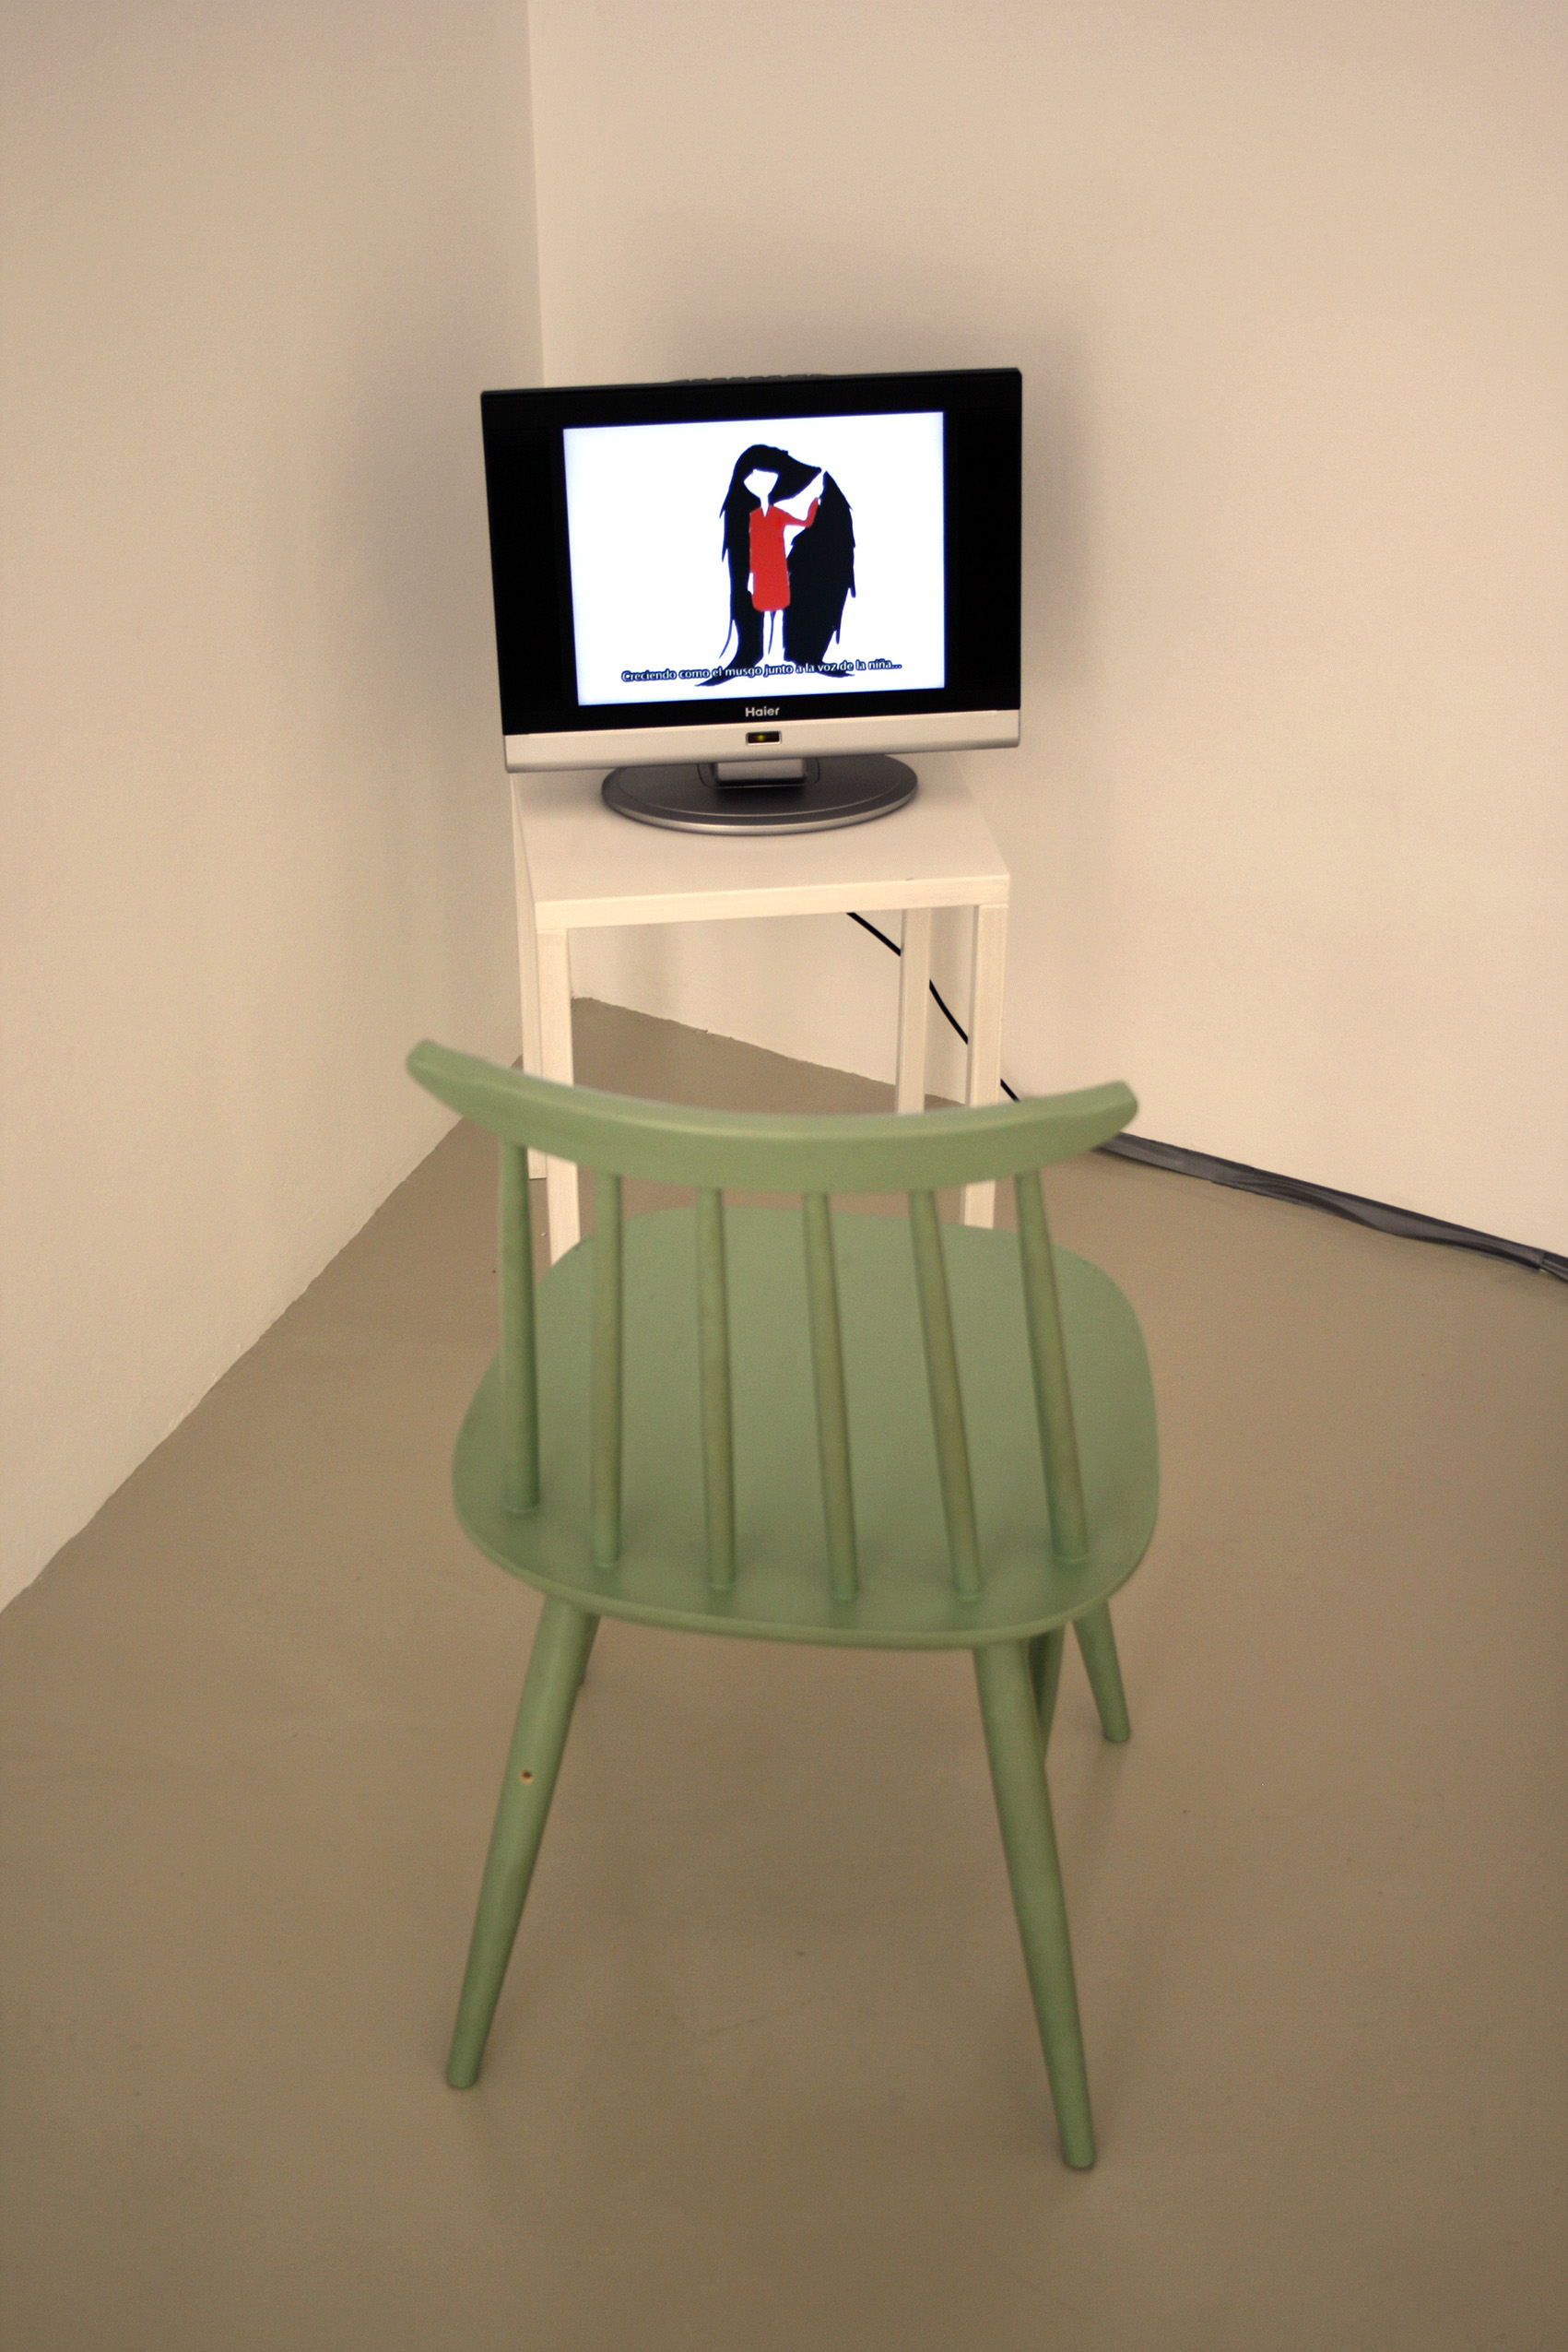 'Once Upon a Time', 2007, video digital, 6 min.